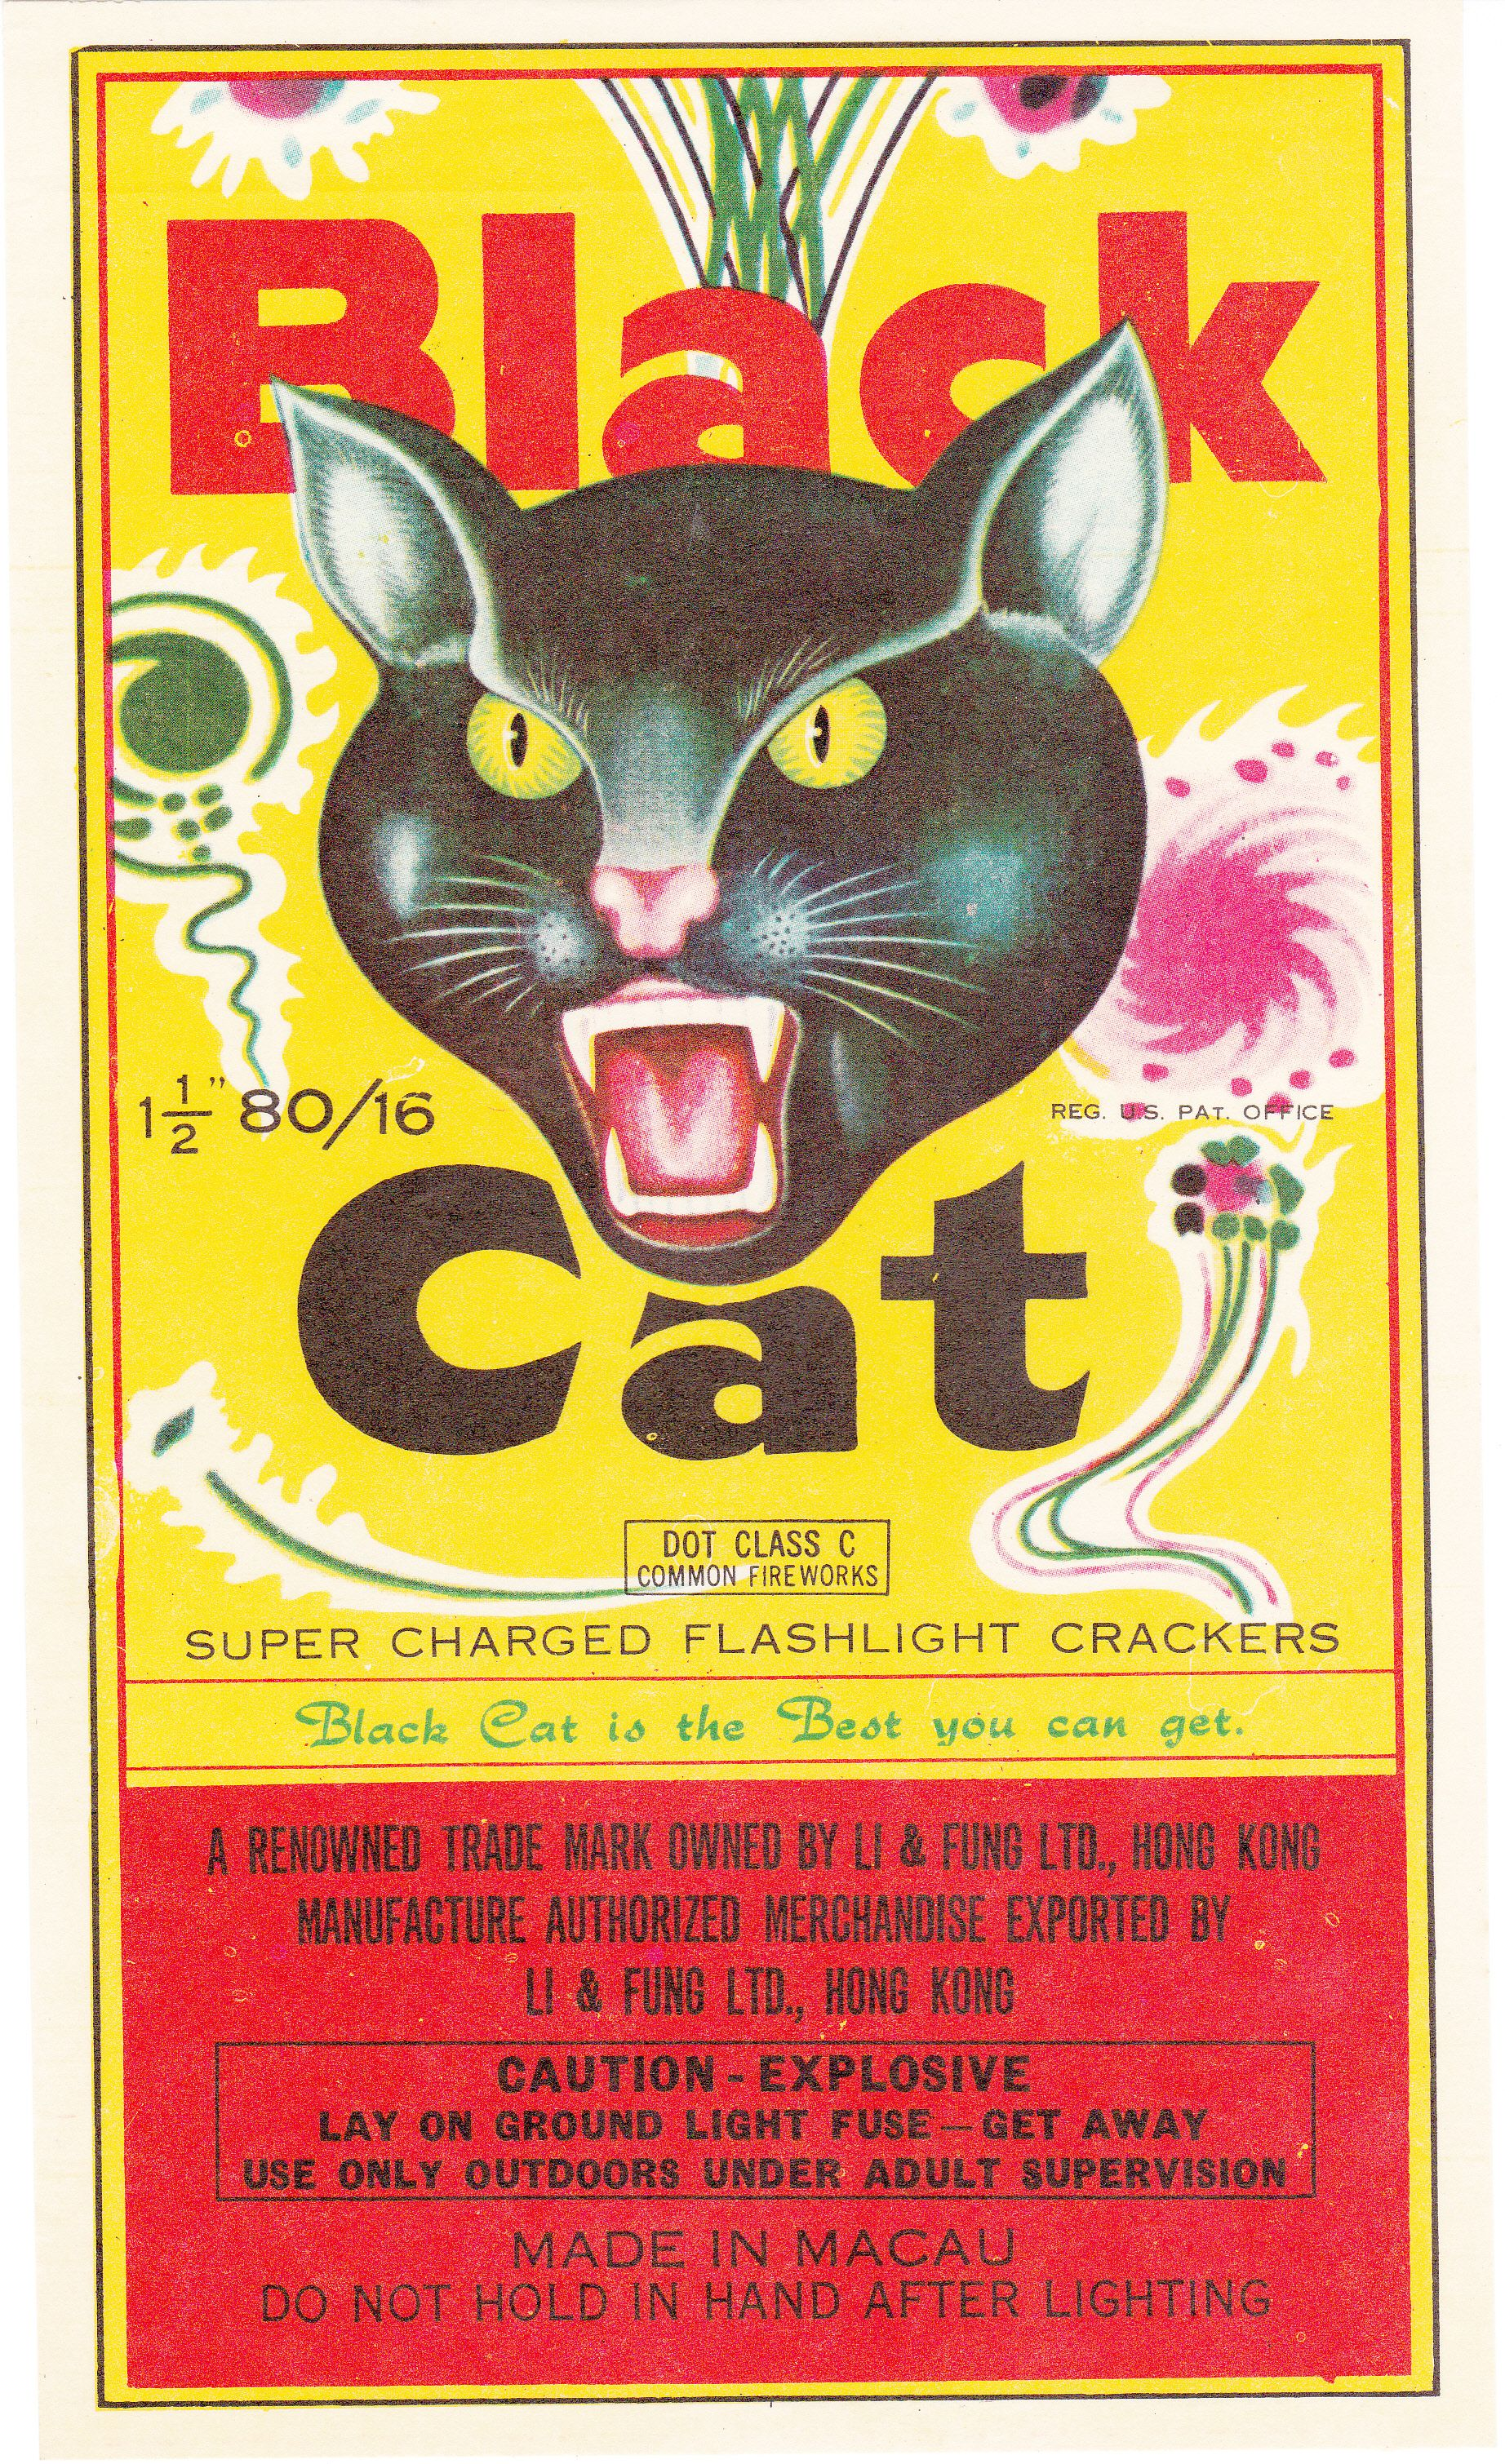 Black Cat Firecracker Label (With images) Black cat